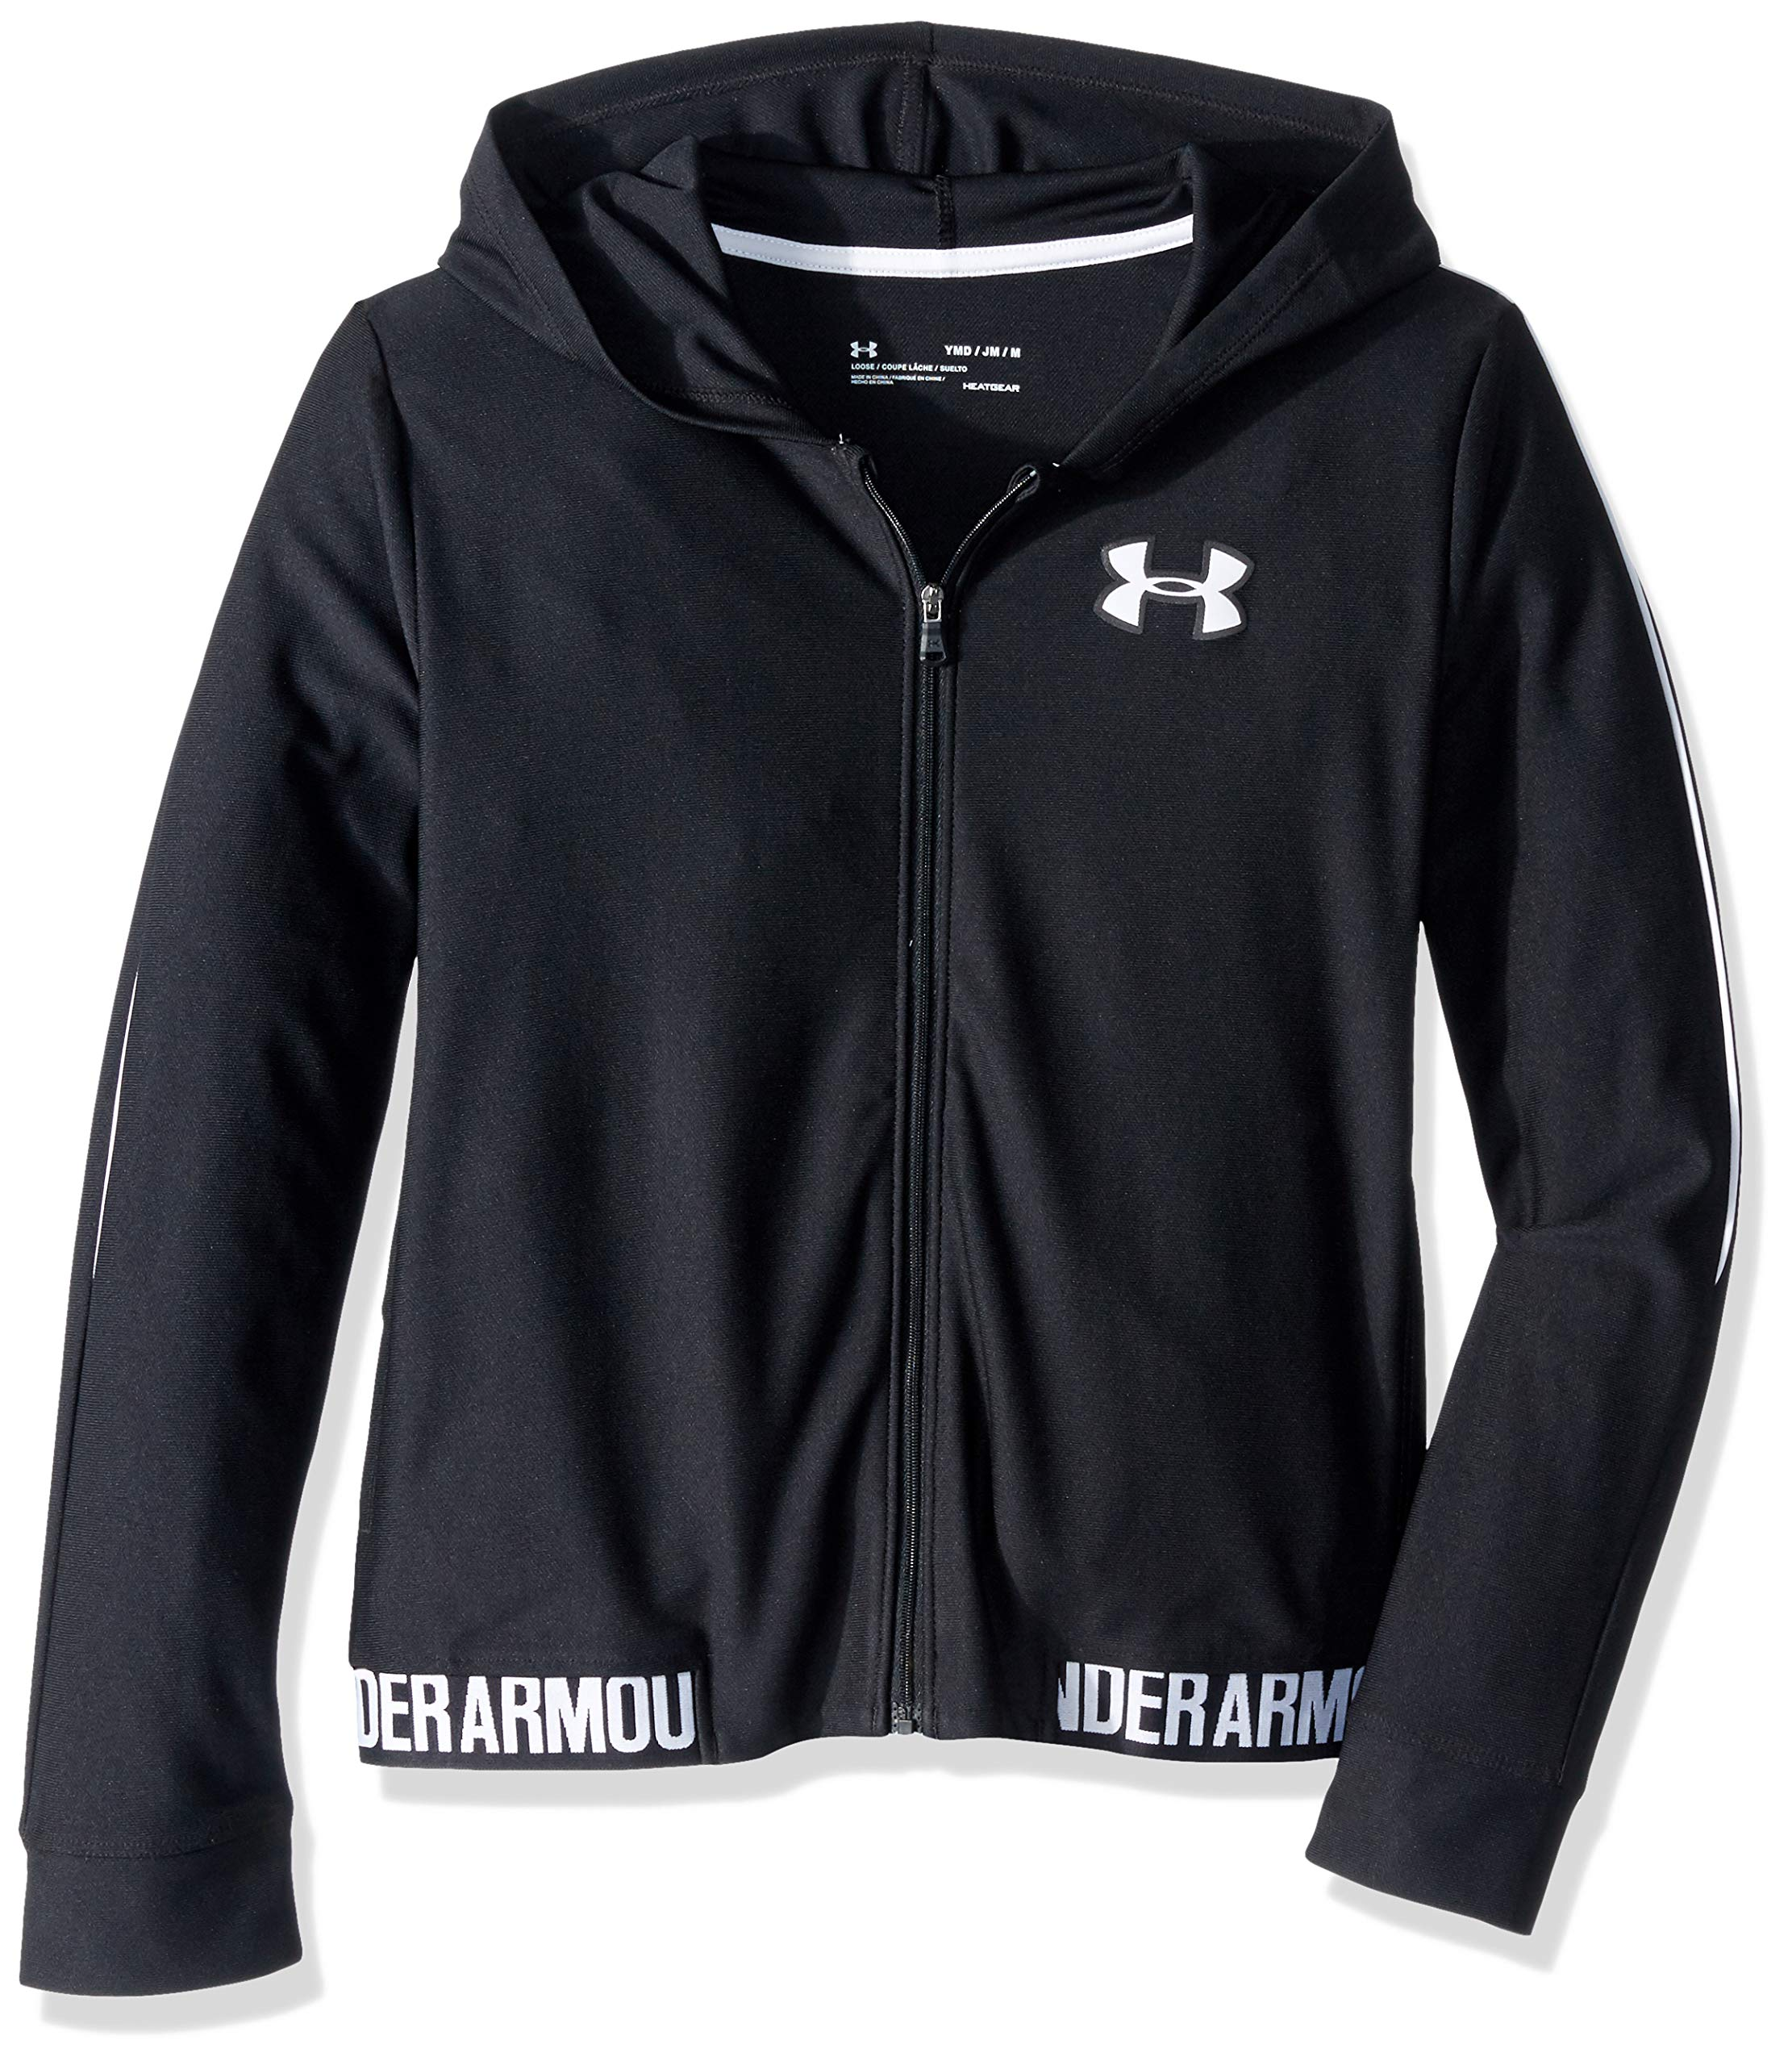 Under Armour Girls' Play Up Full Zip-Up Jacket, Black//White, Youth Small by Under Armour